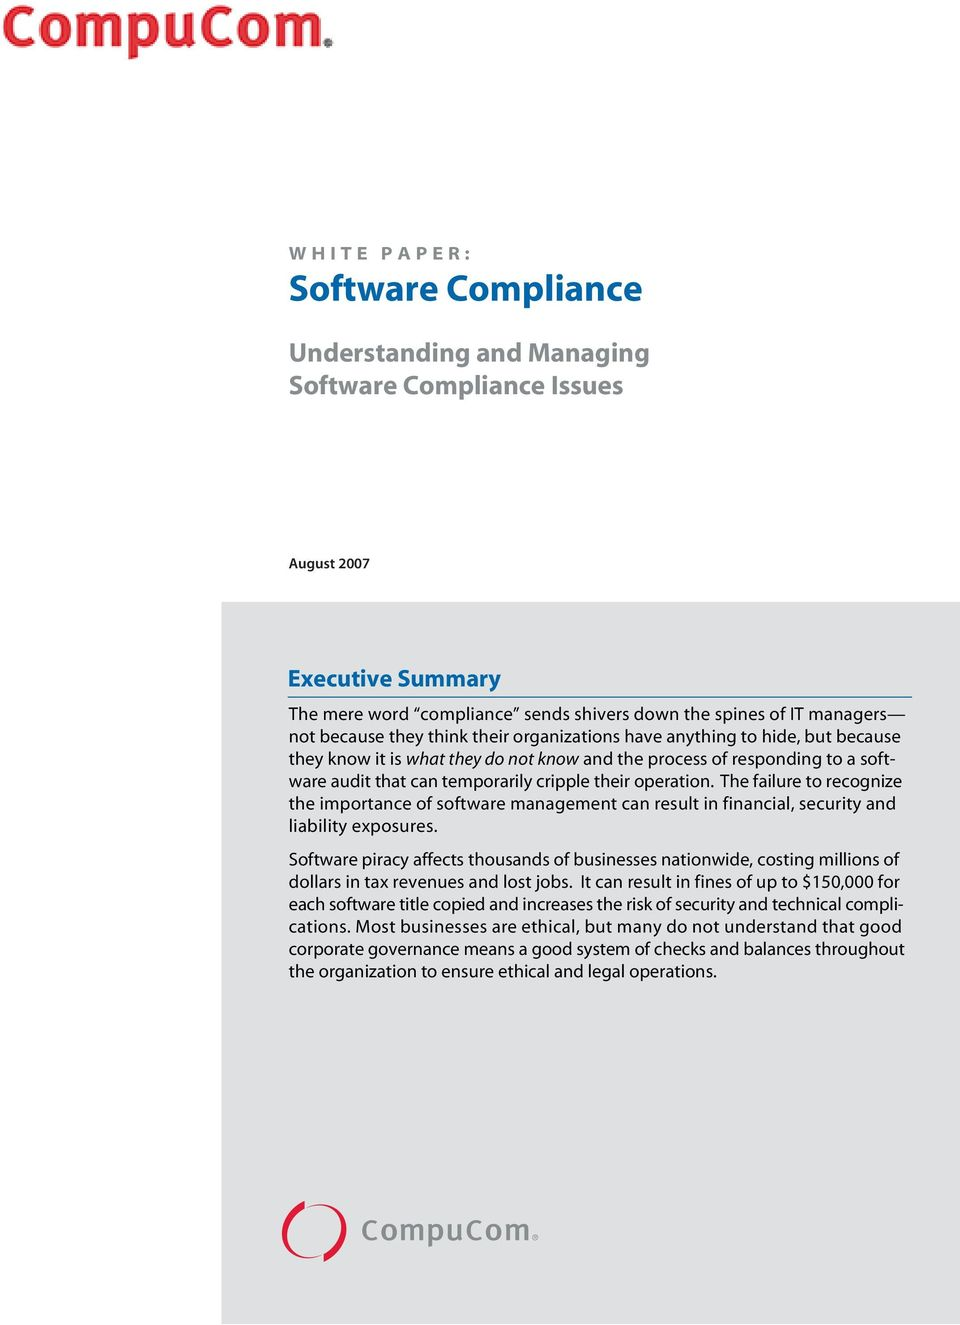 they do not know and the process of responding to a software audit that can temporarily cripple their operation.